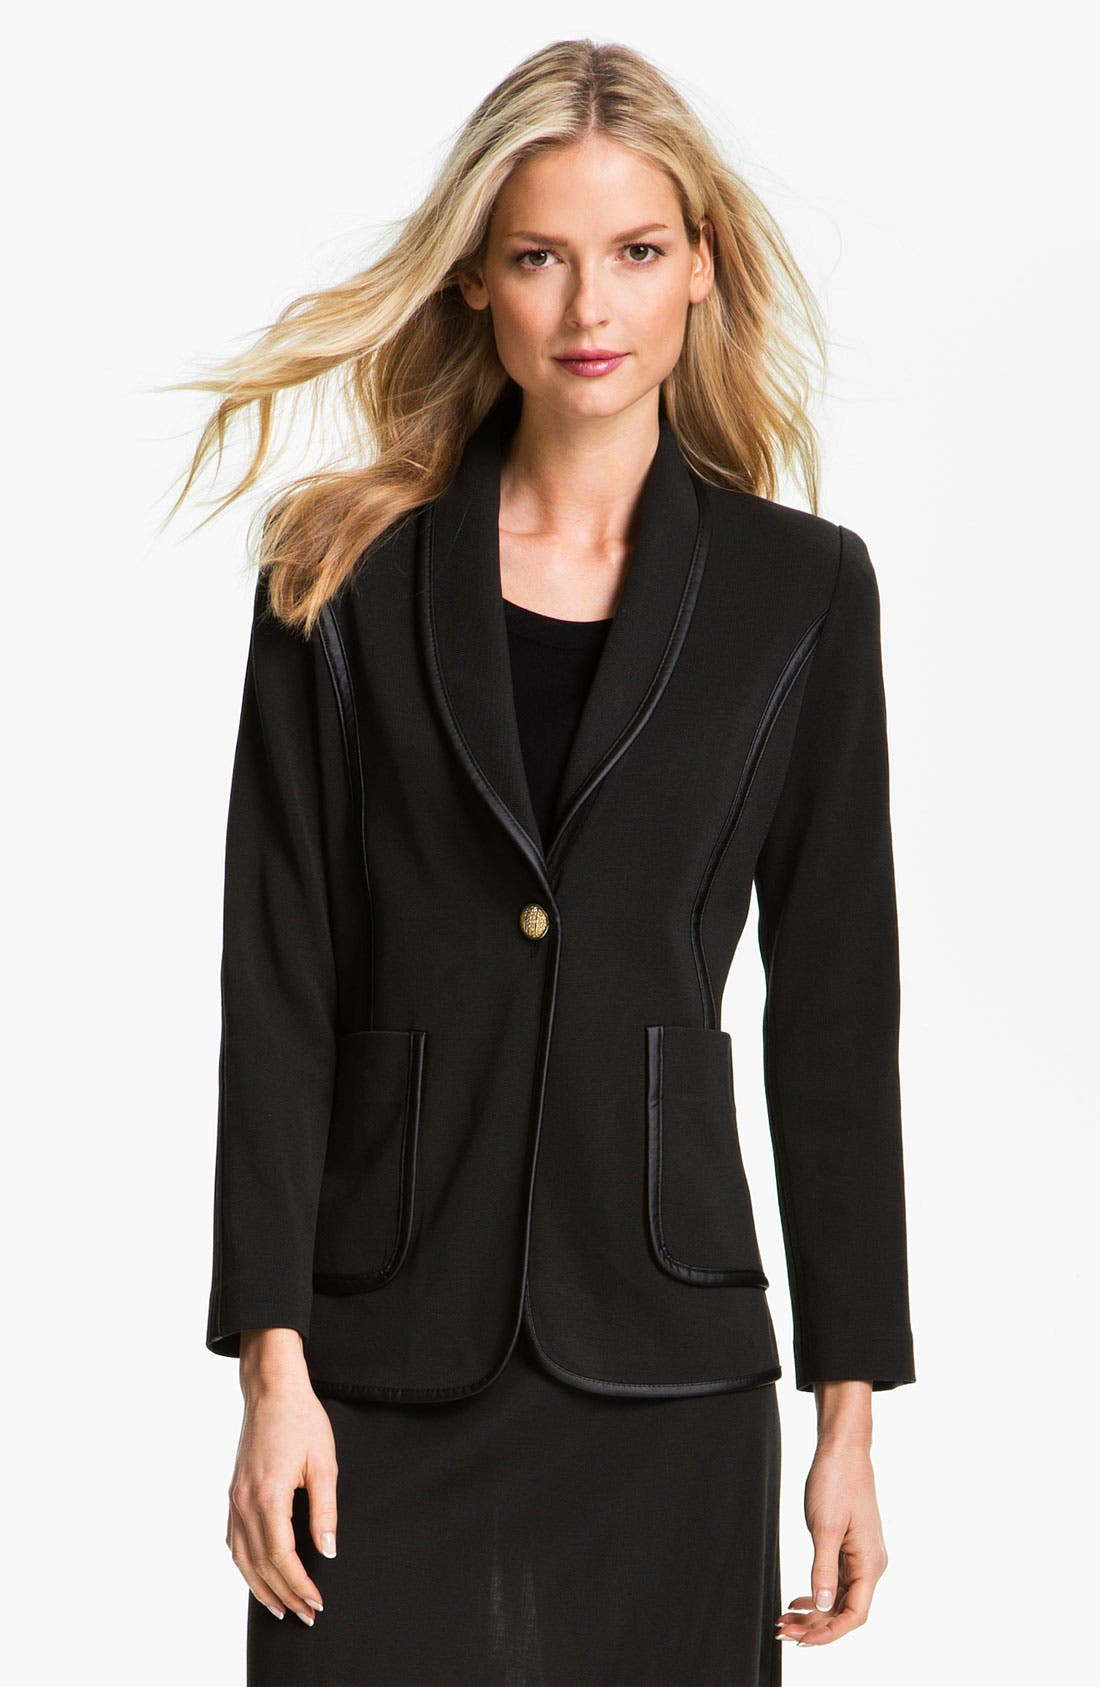 Alternate Image 1 Selected - Exclusively Misook Faux Leather Trim Blazer